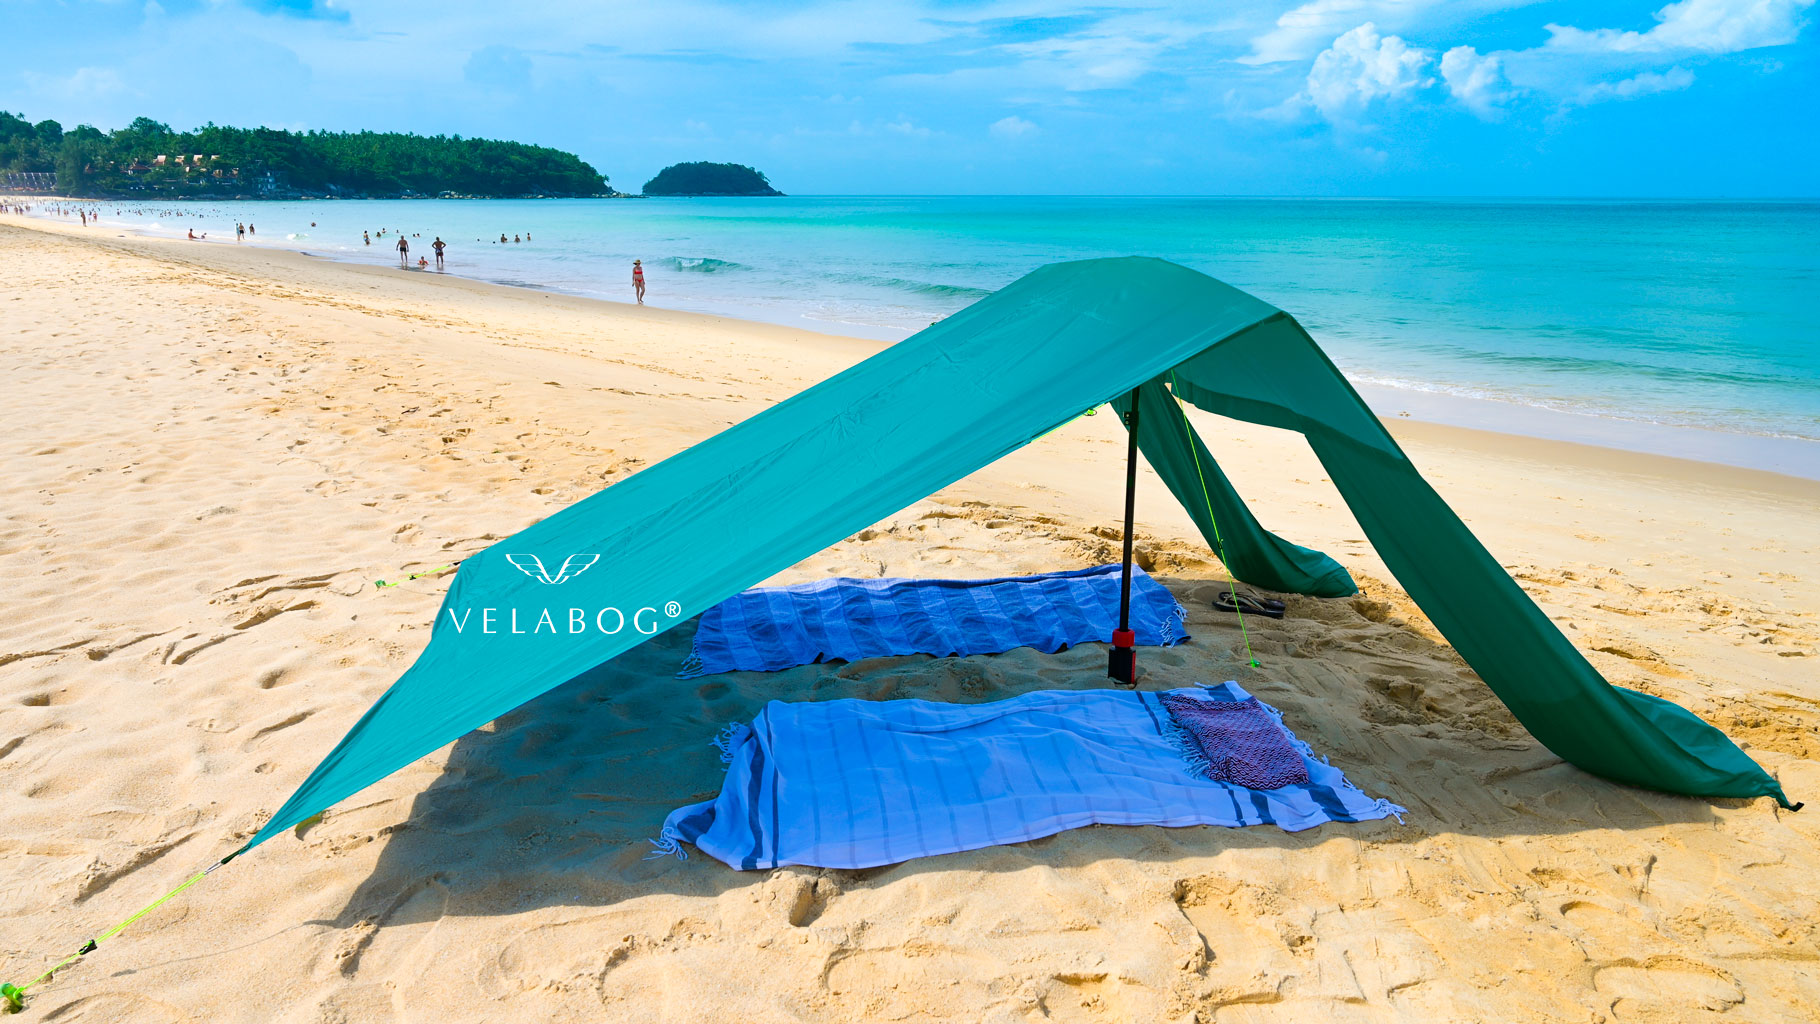 Velabog sun sail «Breeze» green on the windless beach. Sun sail, beach umbrella and beach tent in one. Thanks to its light weight, it is easy to go far from the crowds. Flexible and independent.